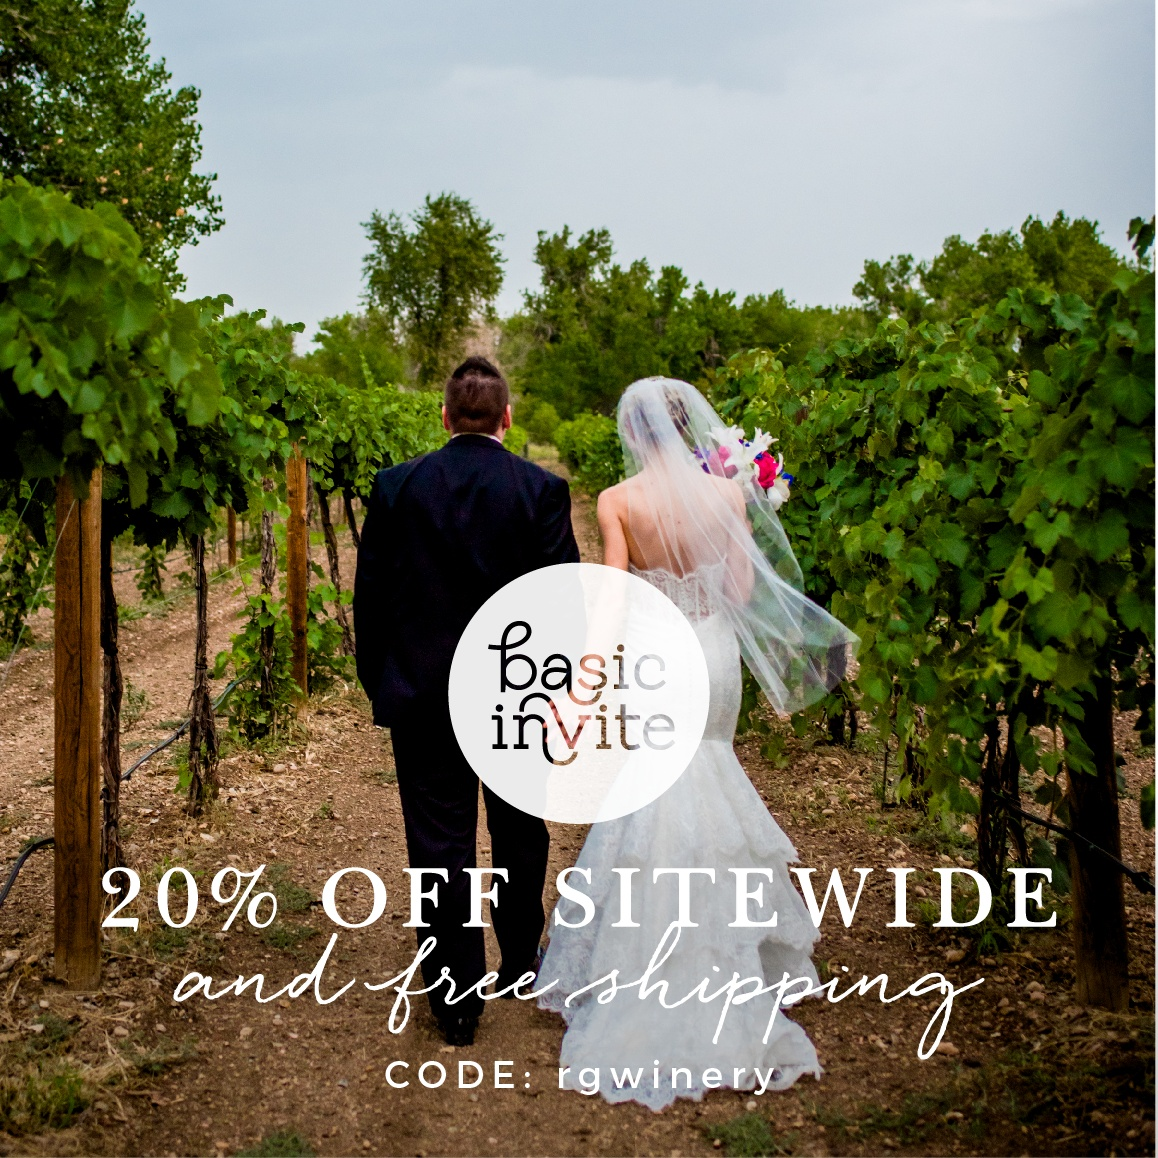 "$100 Gift Card Code: ASK HAWLEY   20% off invitations and free shipping- use code above   IMPORTANT NOTE:  Make sure you apply the promo code BEFORE applying the gift card. The system is not ""perfect"" and wont apply the promo code after the gift card is applied. Also, you'll get your discount on everything!"